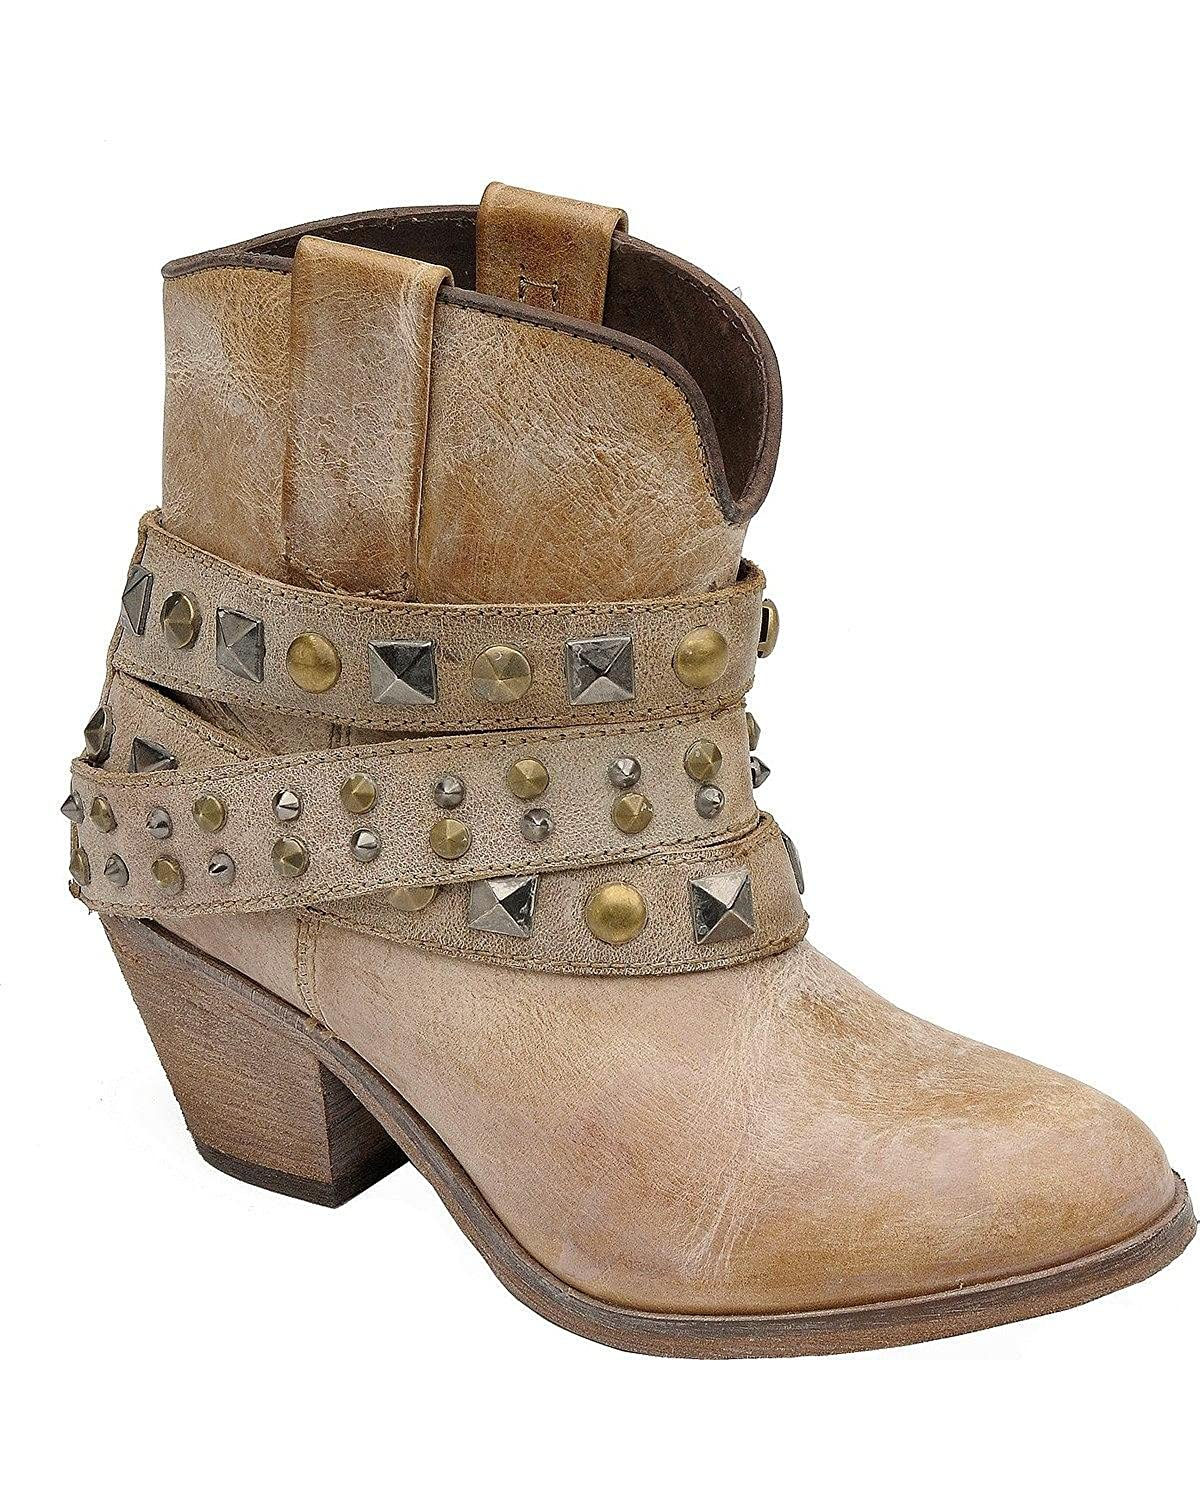 Corral Women's Studded Strap 8.5 Ankle Boot Round Toe B01FQXXVG0 8.5 Strap B(M) US|Tan 8dcf64